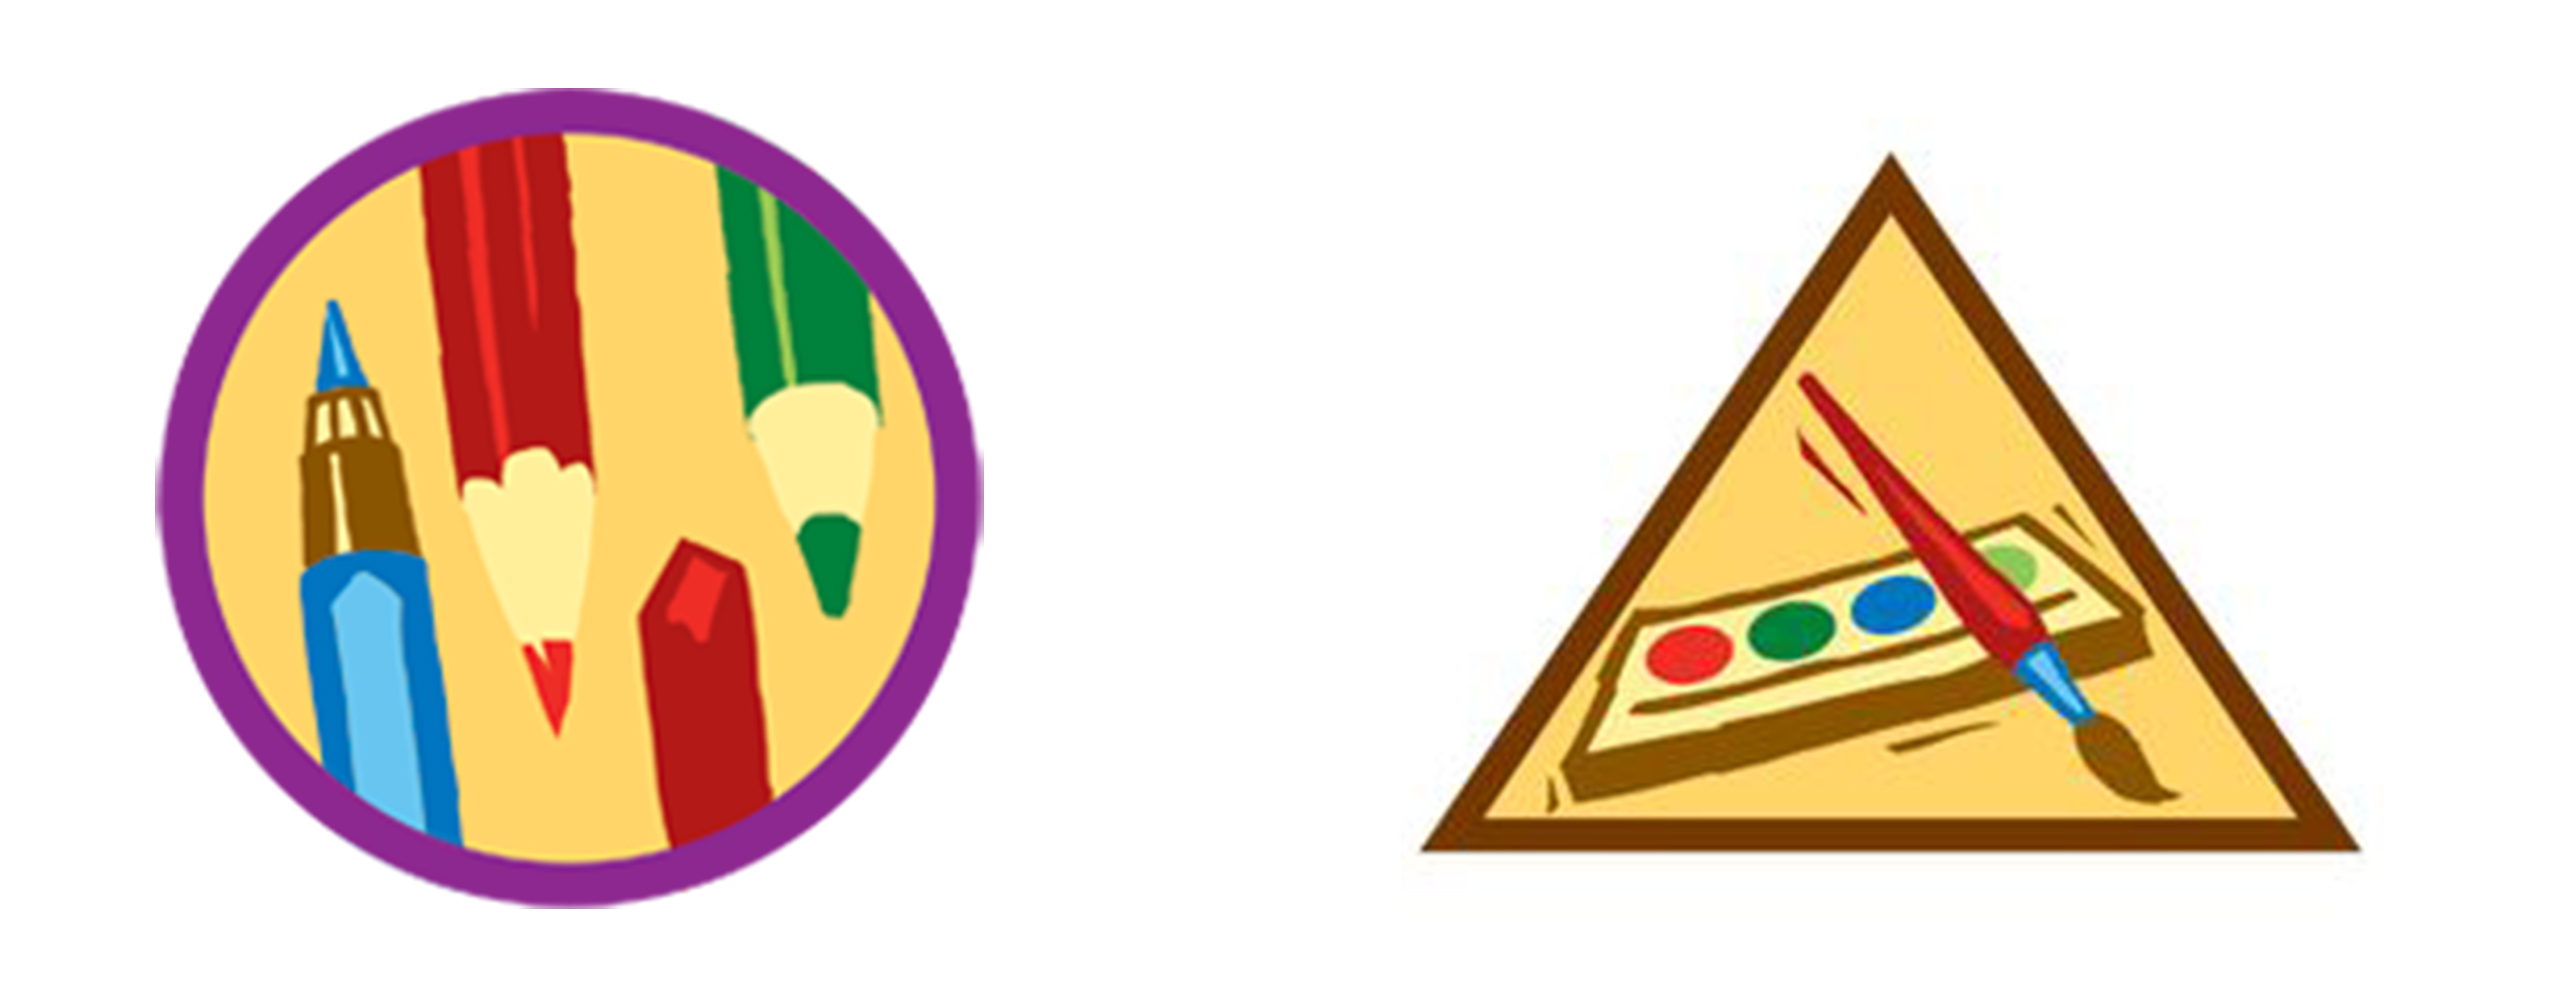 The painting and drawing graphics for Girl Scout badges